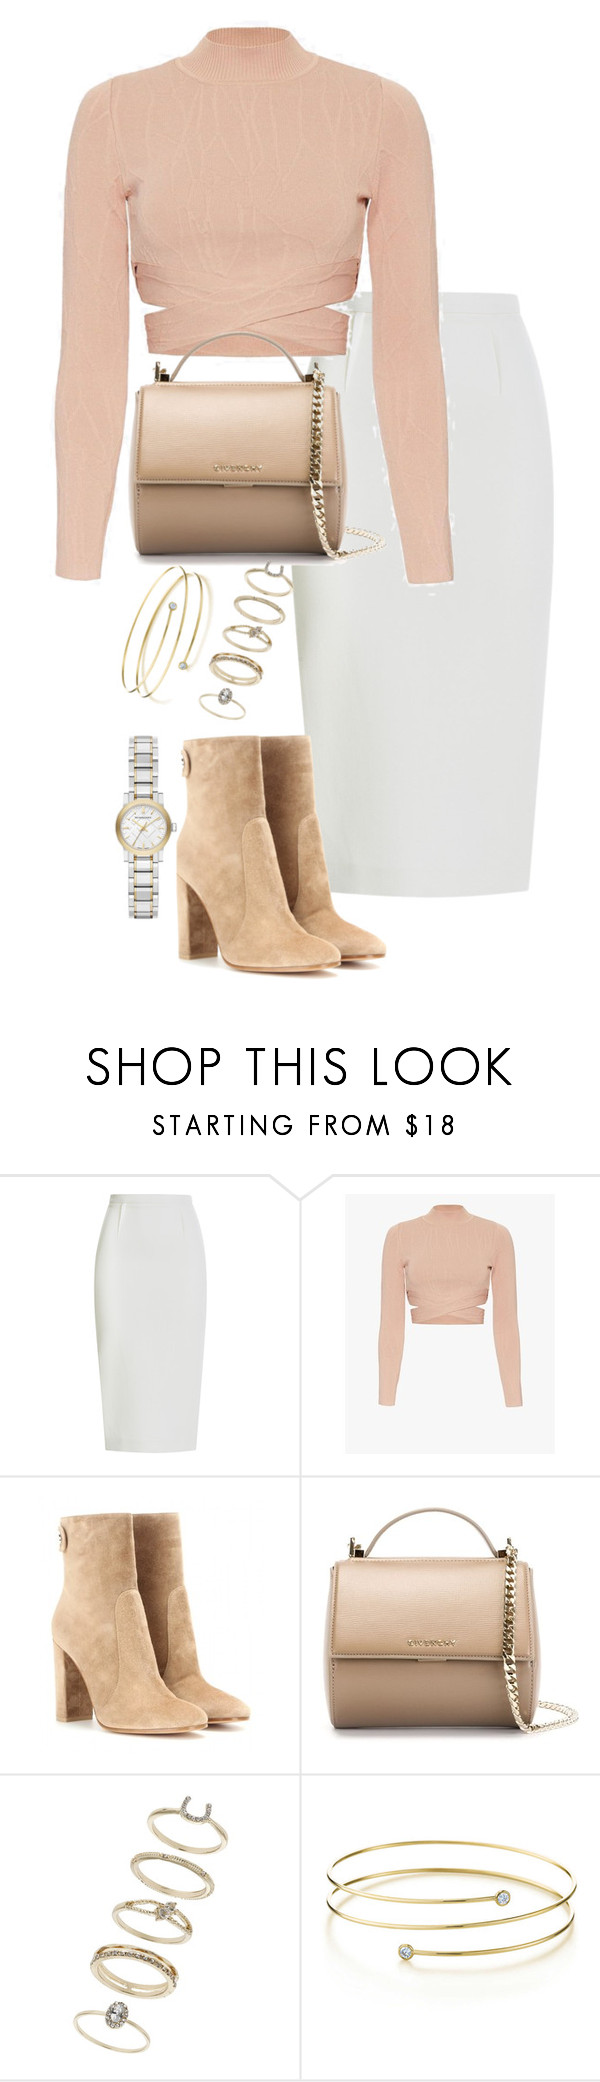 """""""Untitled #1872"""" by ritavalente ❤ liked on Polyvore featuring Roland Mouret, Jonathan Simkhai, Gianvito Rossi, Givenchy, Miss Selfridge, Elsa Peretti and Burberry"""